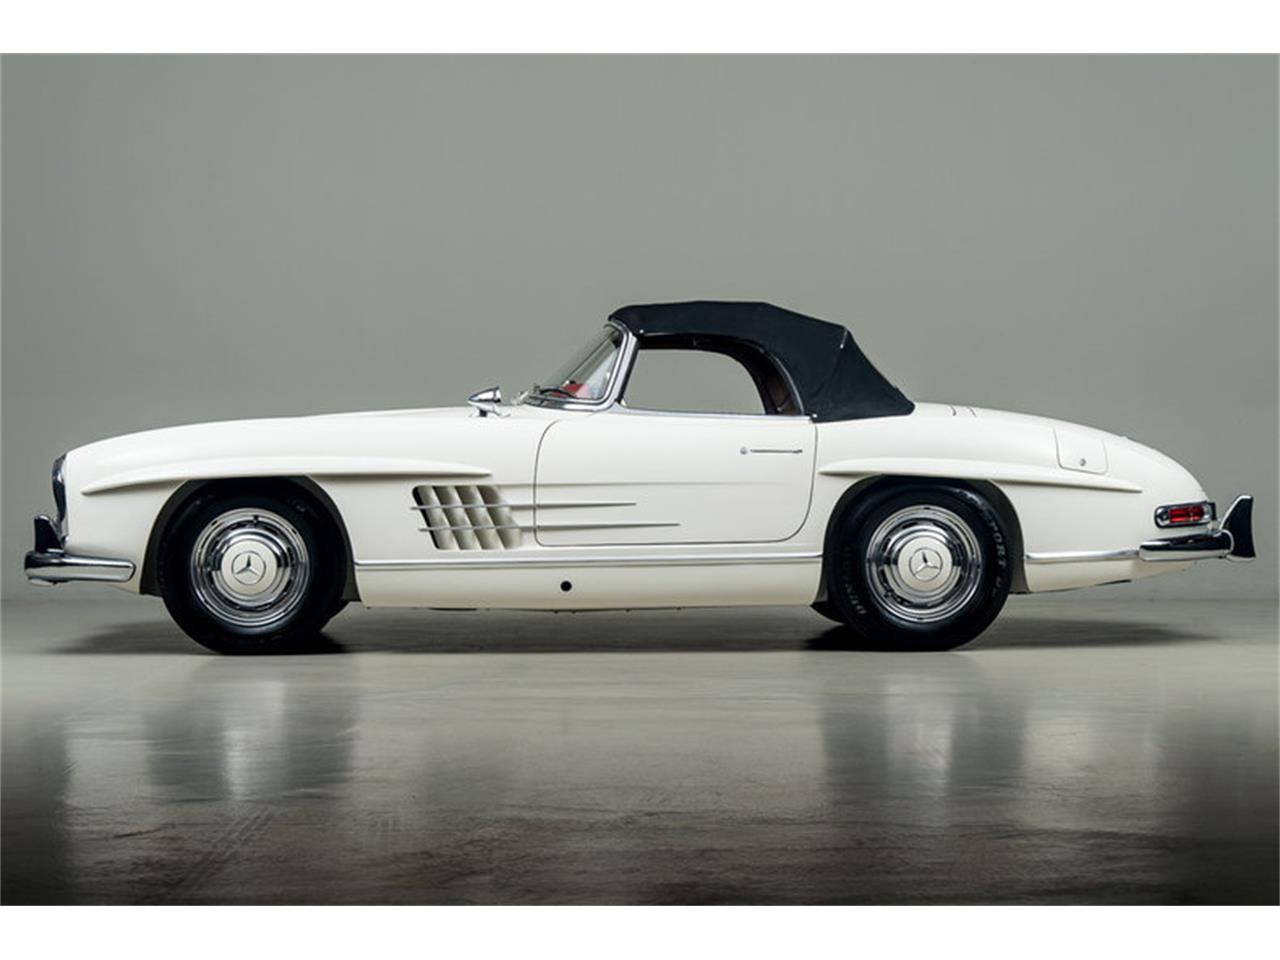 Large Picture of Classic 1963 Mercedes-Benz 300SL Roadster Auction Vehicle - EFPZ